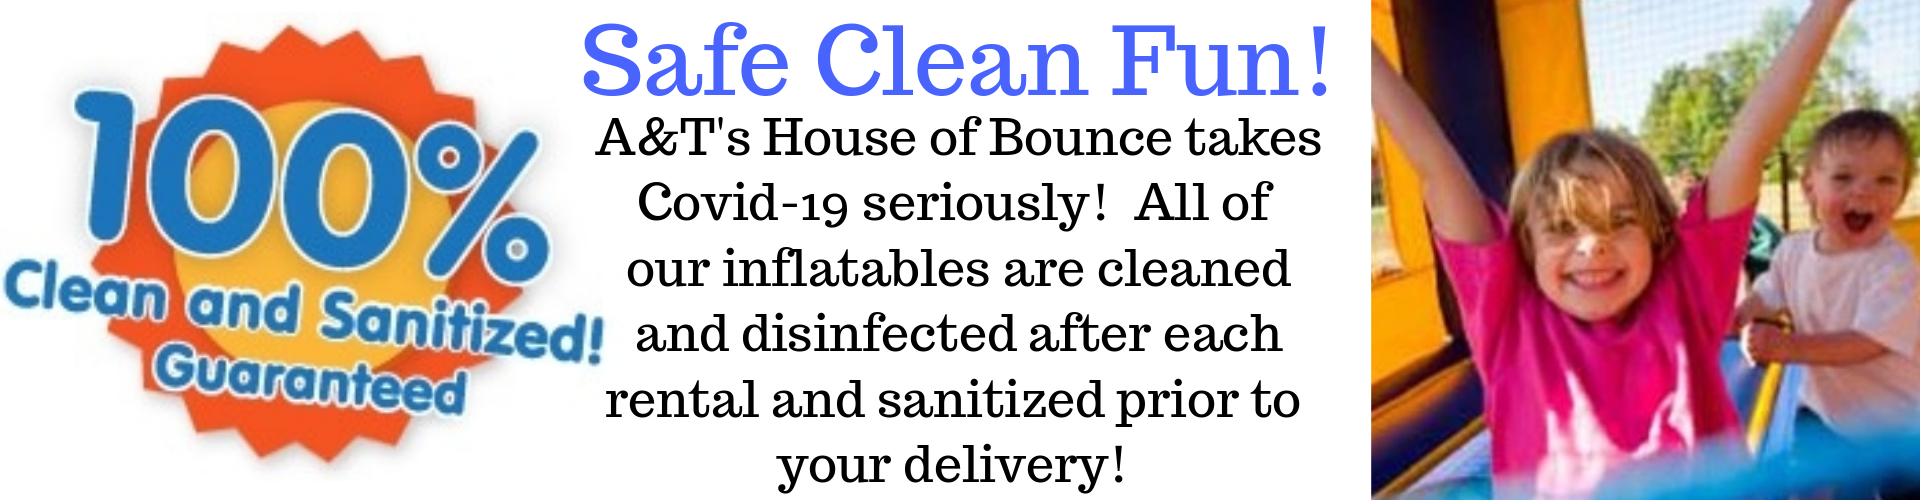 We clean, sanitize and disinfect all Inflatables after each rental!